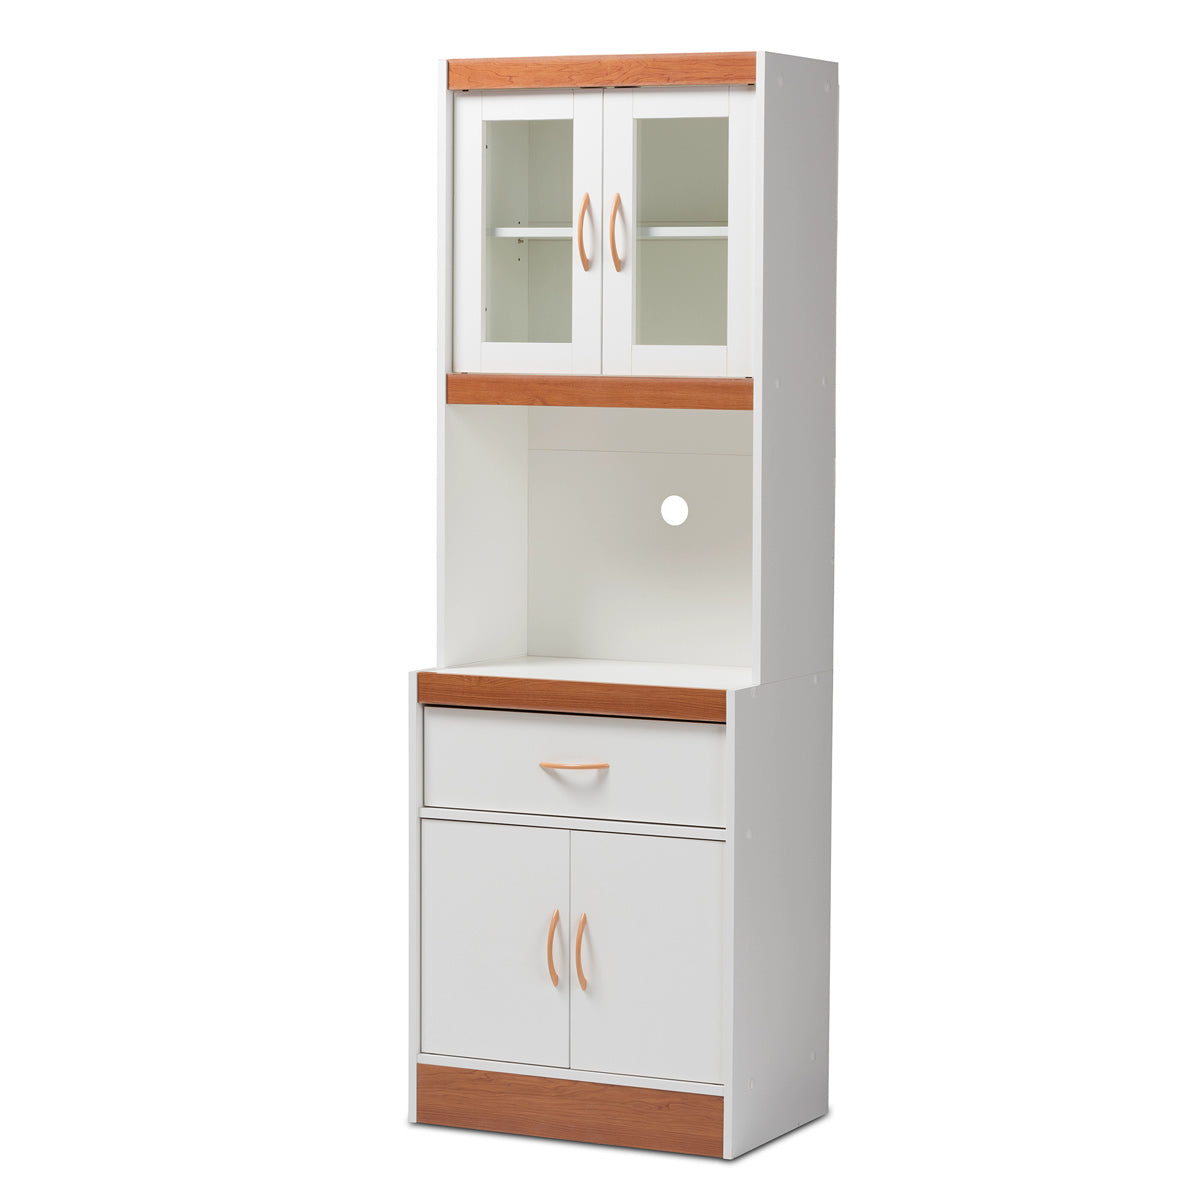 Baxton Studio Laurana Modern and Contemporary White and Cherry Finished Kitchen Cabinet and Hutch Baxton Studio-0-Minimal And Modern - 1